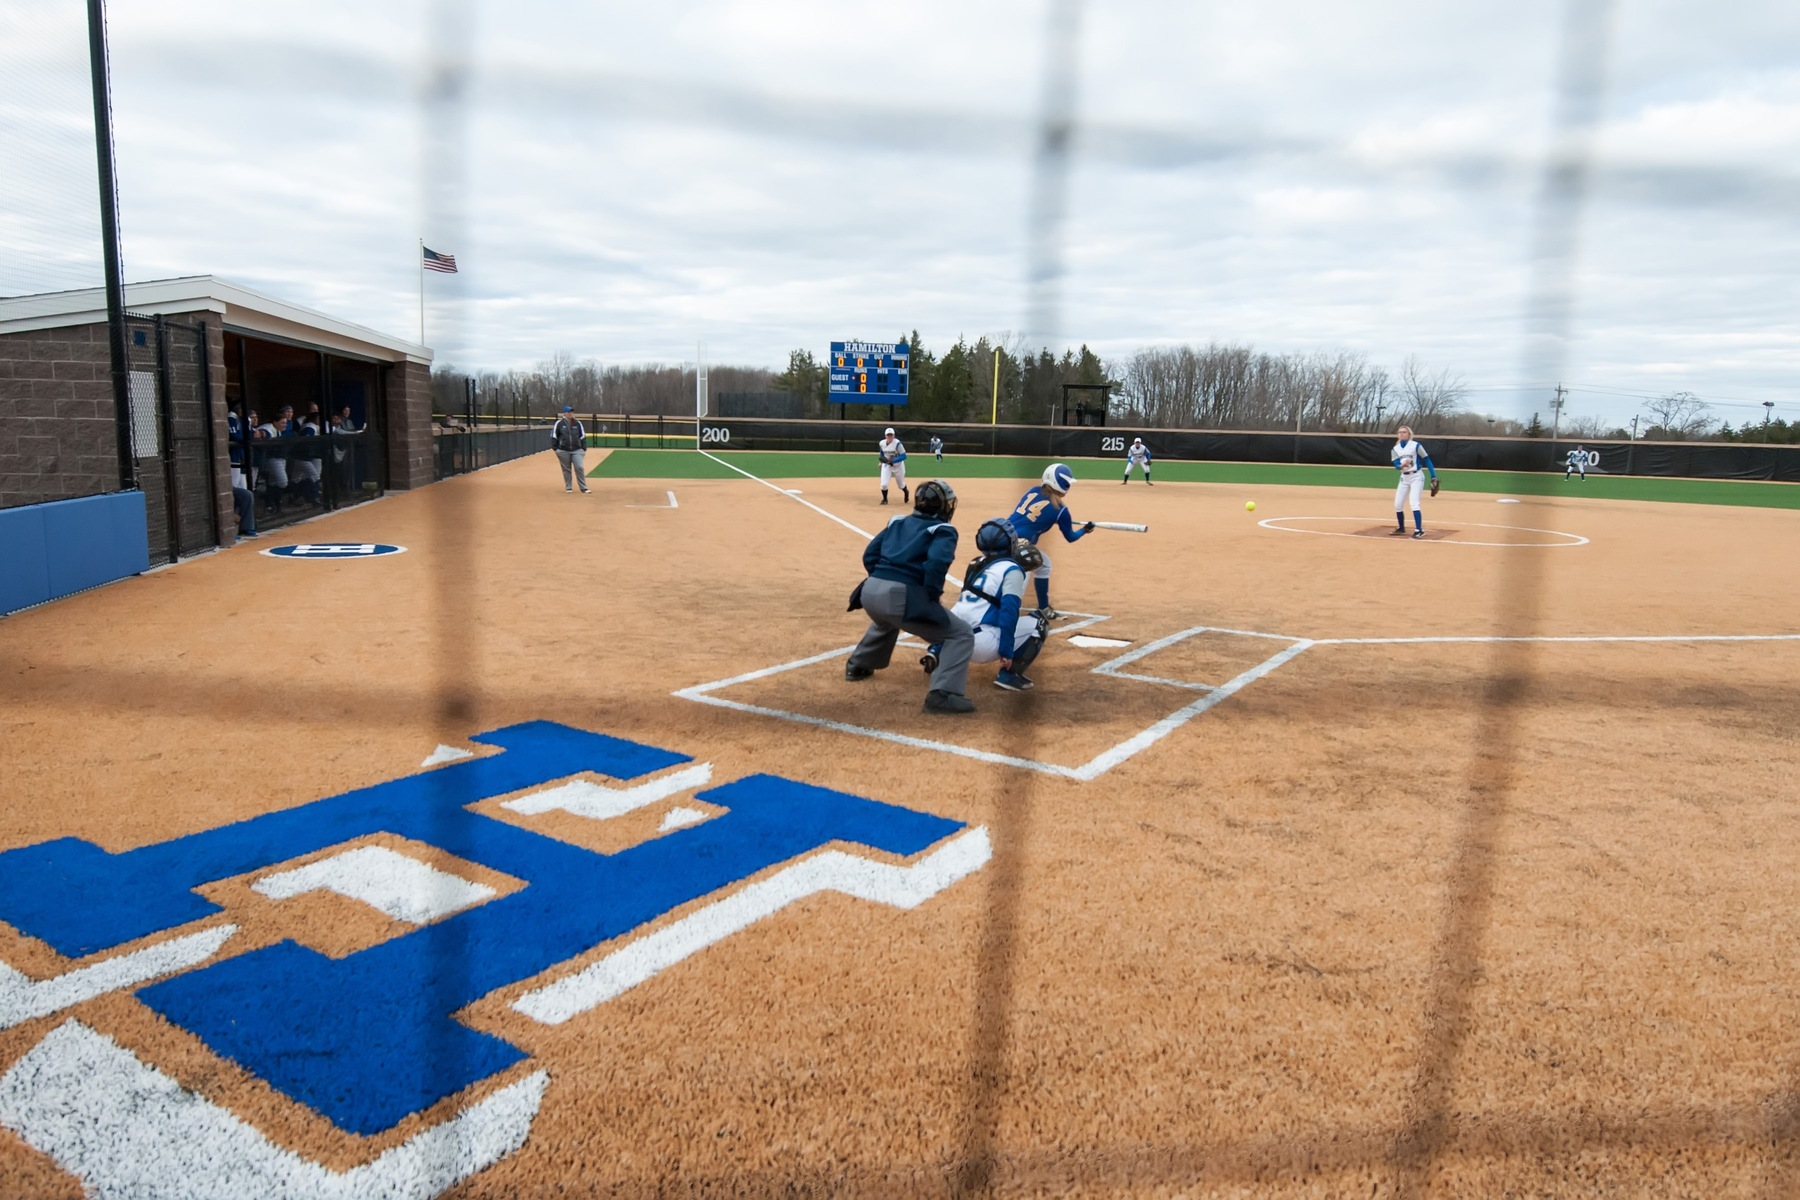 Hamilton plays its first softball games at the Loop Road Softball/Baseball Complex (Michael P. Doherty photo).